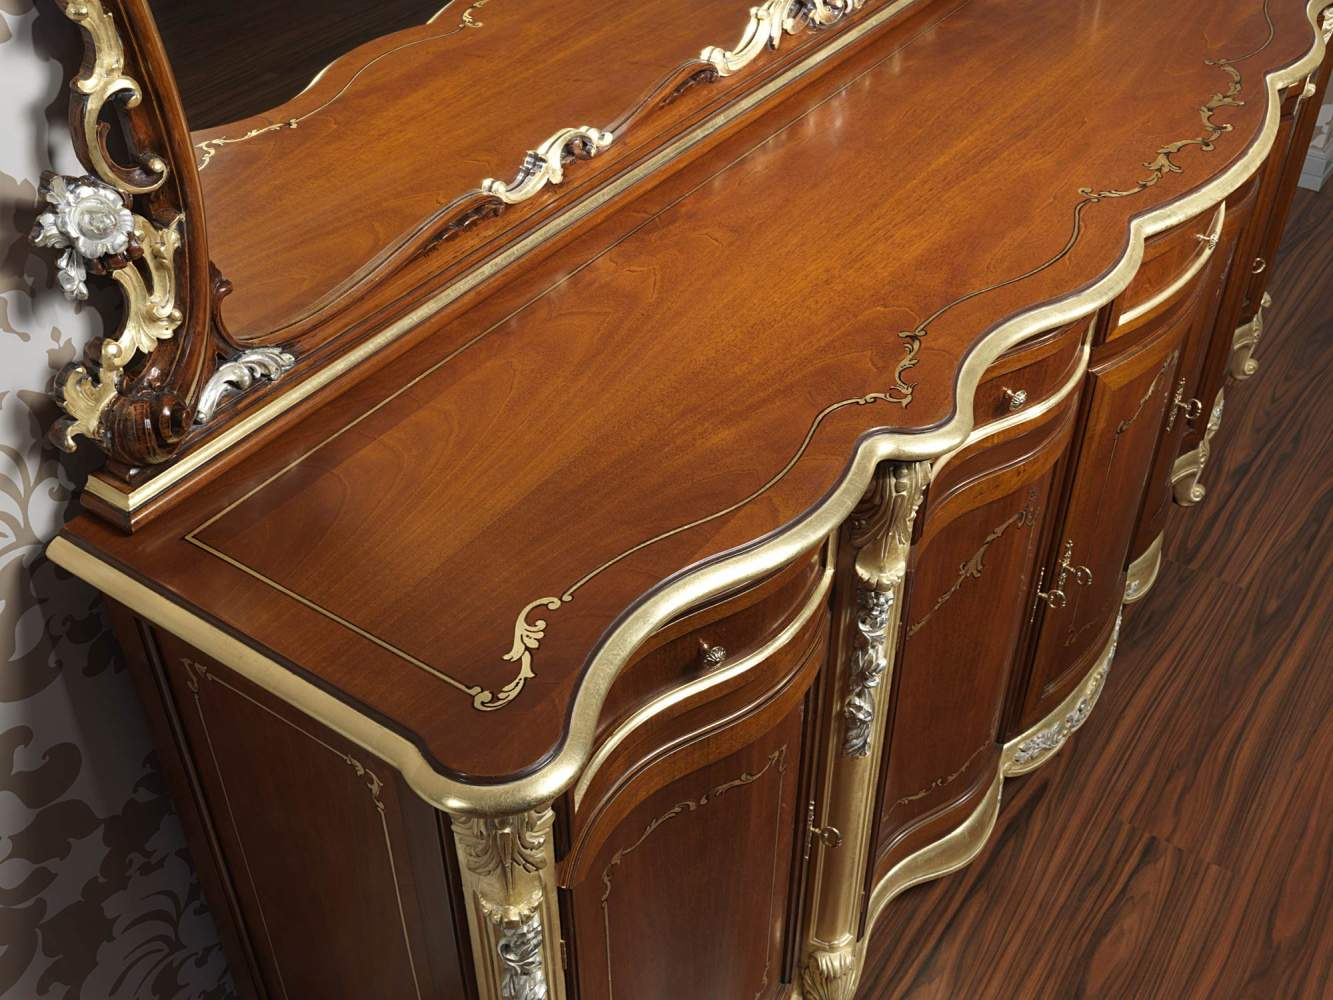 Sideboard for luxury dining room in the classic style of Louis XV